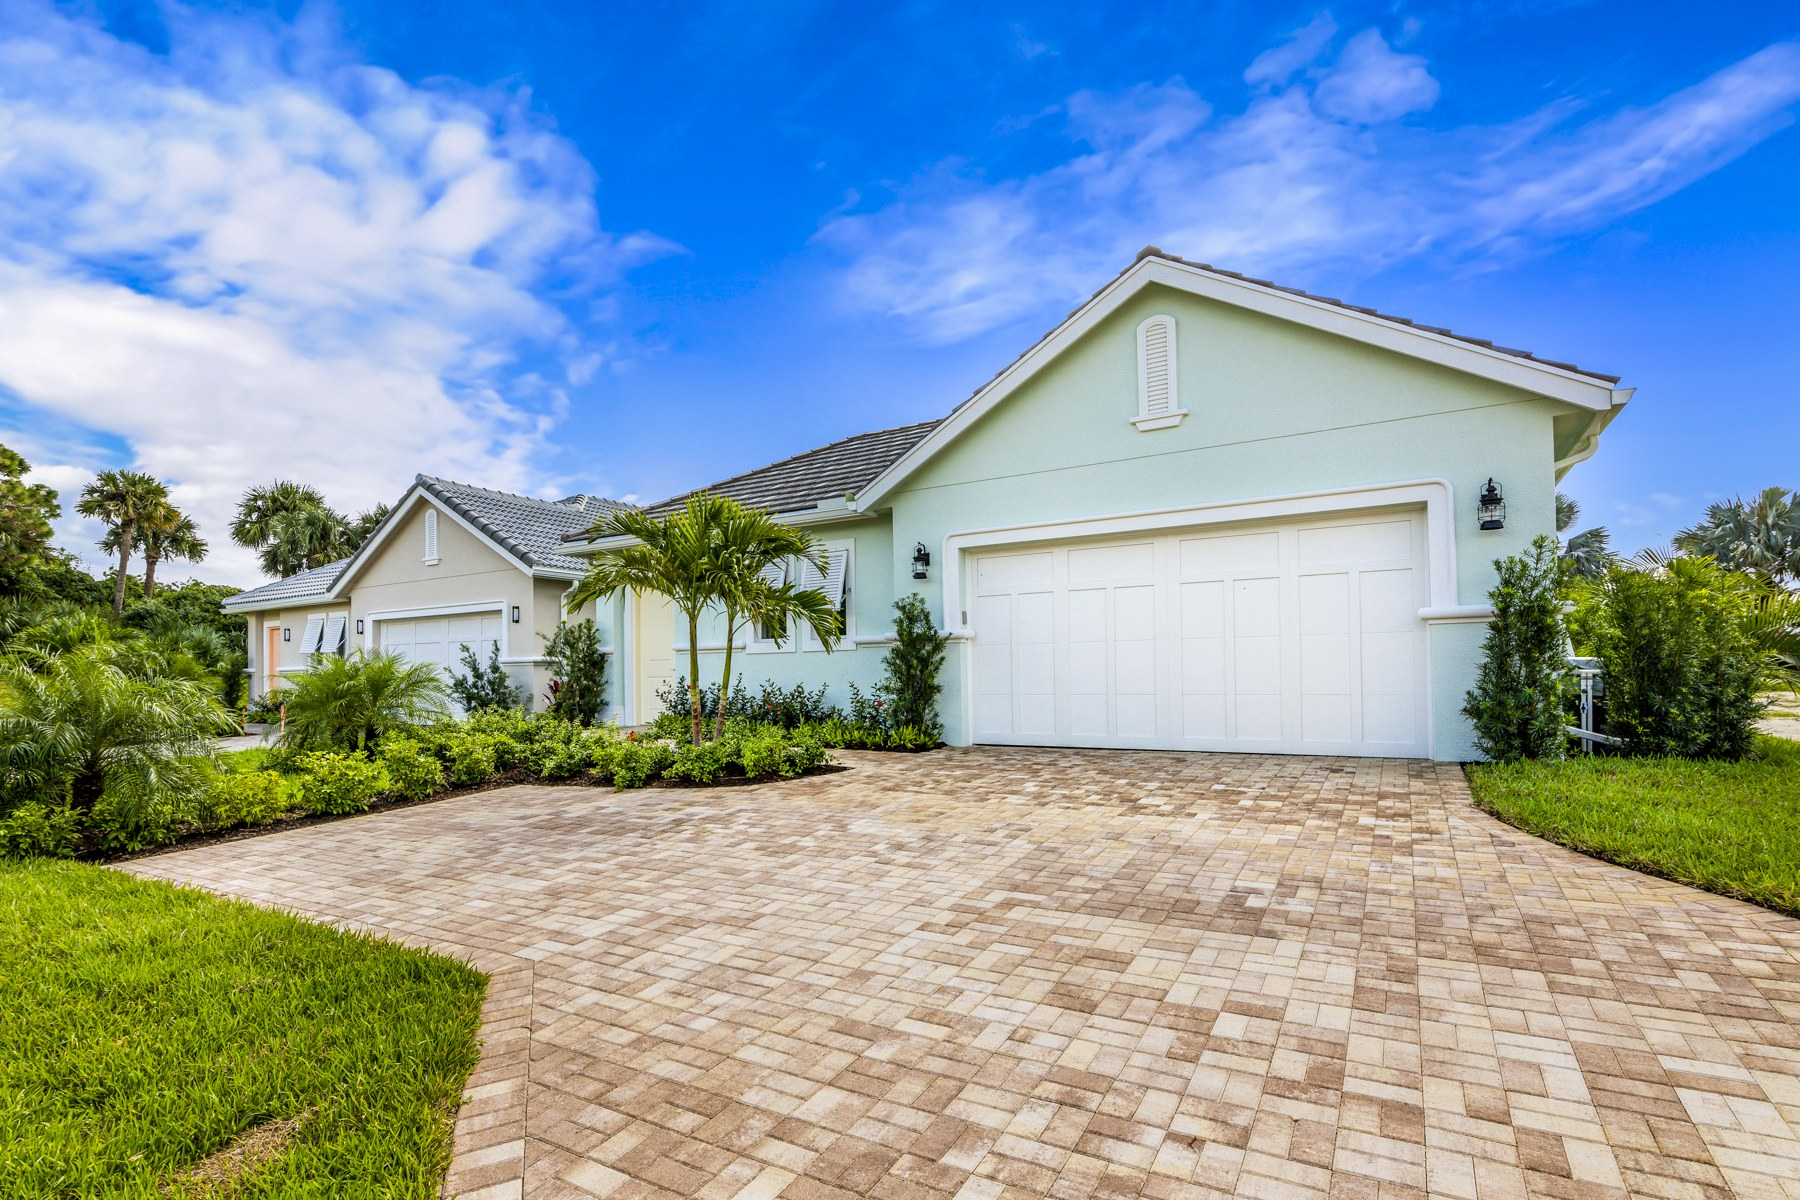 Single Family Homes for Sale at 2143 Falls Circle Vero Beach, Florida 32967 United States